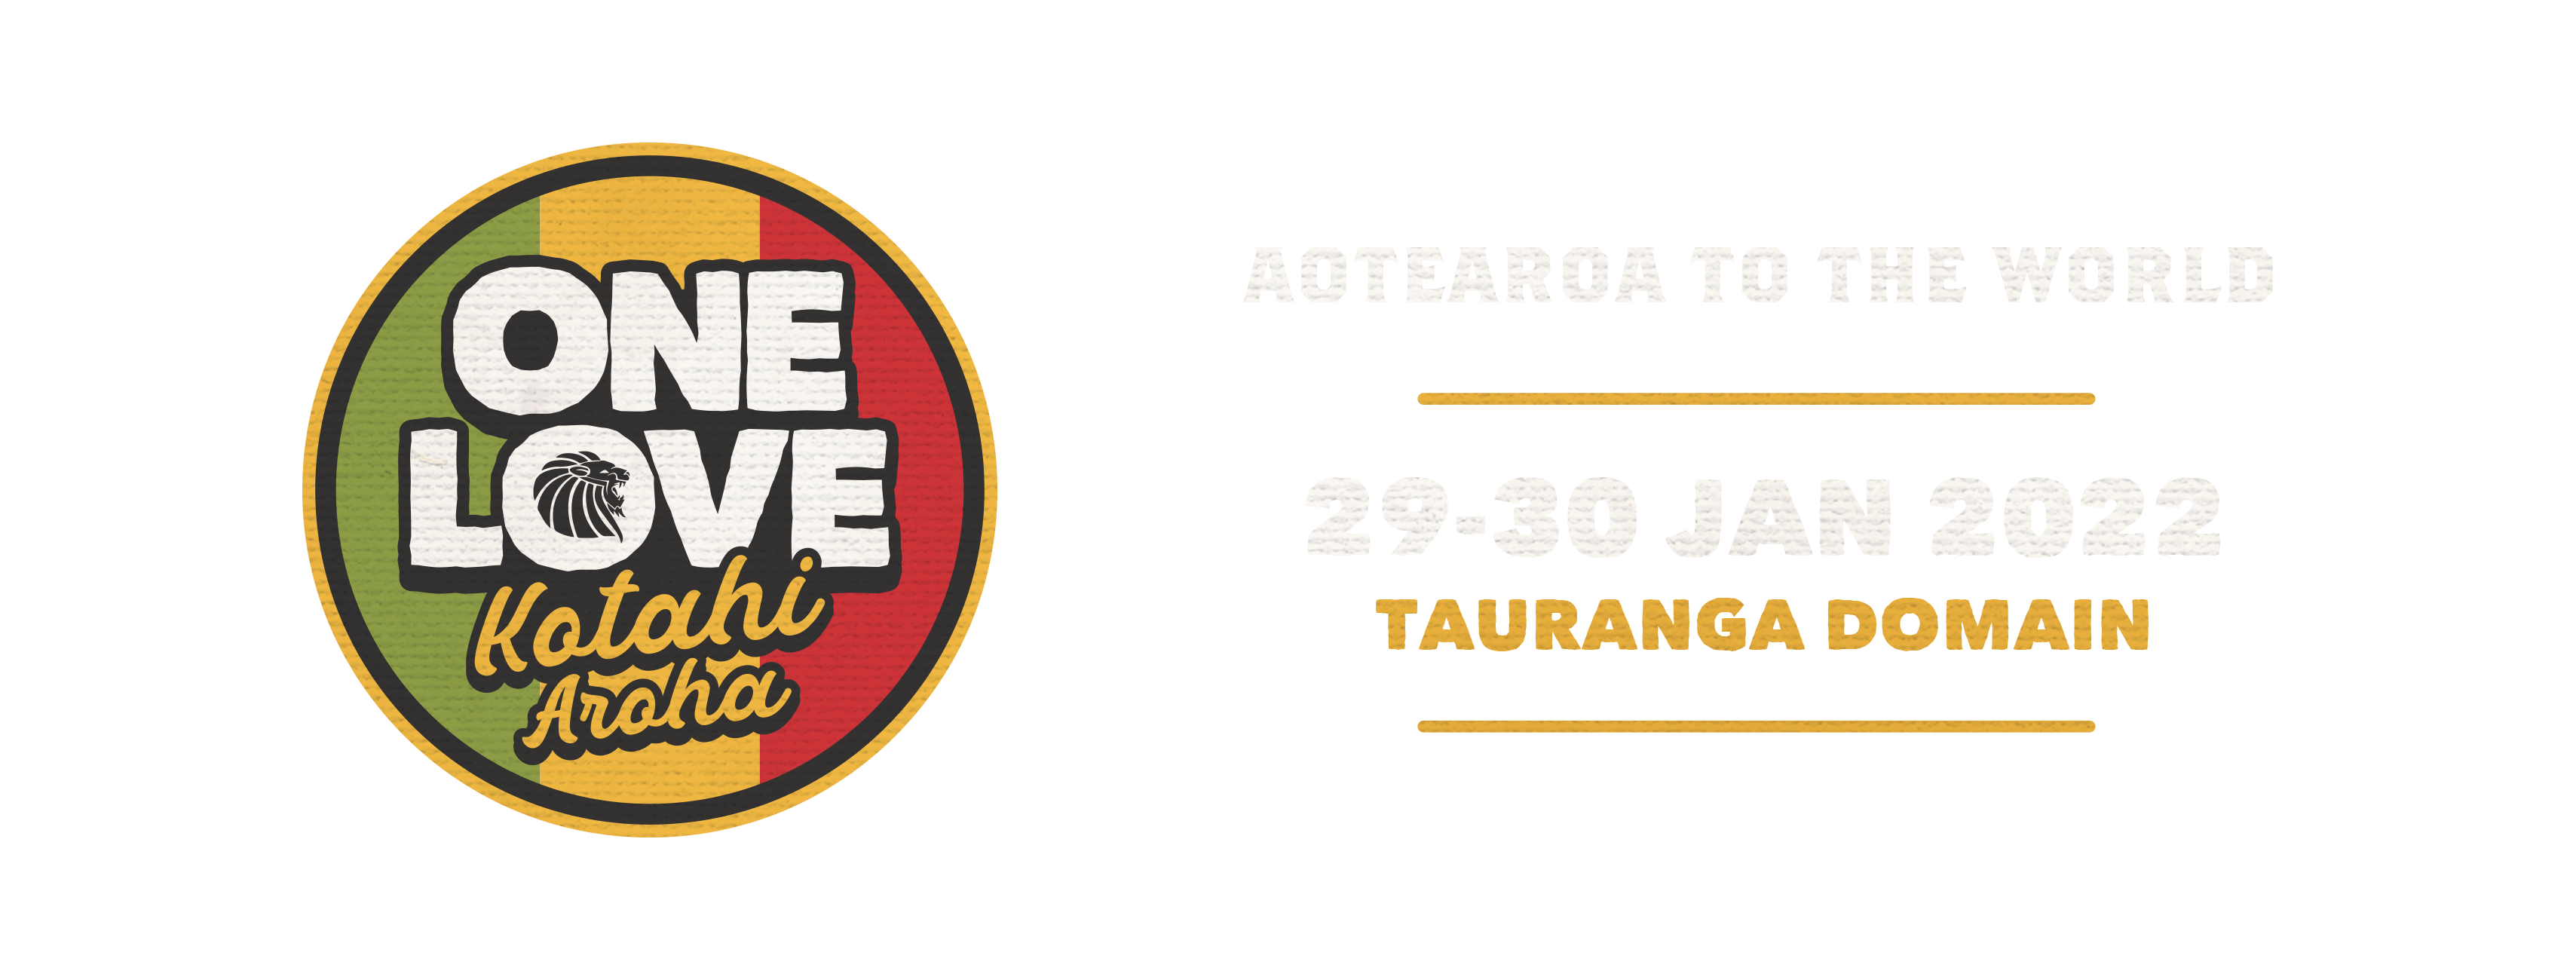 Tickets for ONE LOVE FESTIVAL 2022 in Tauranga from Ticketspace